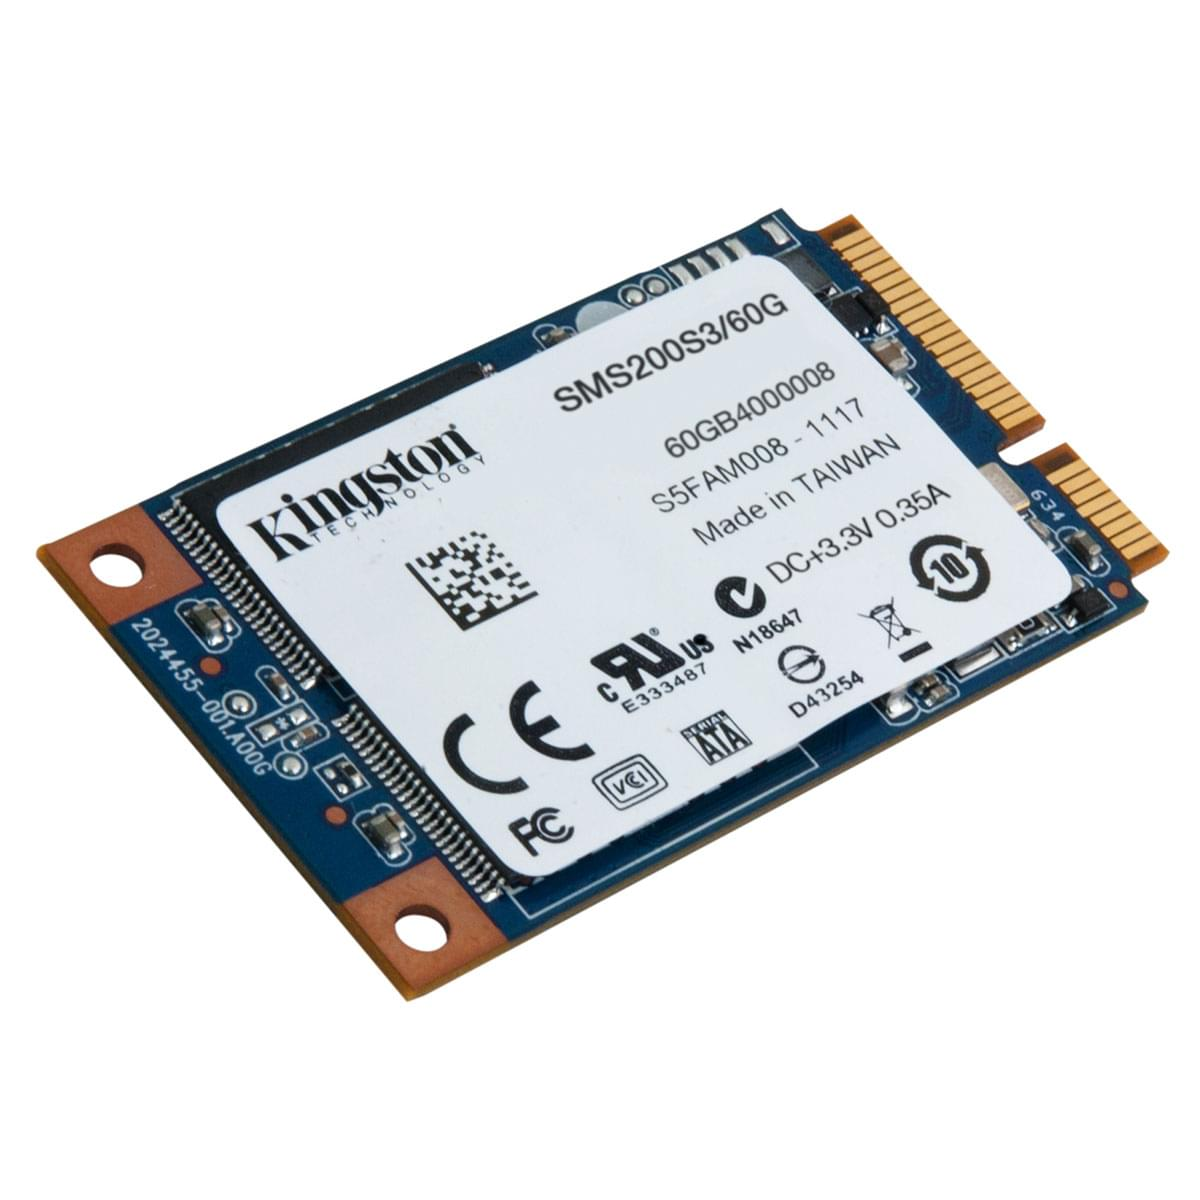 Kingston 60Go mSATA SMS200S3/60G 60-64Go - Disque SSD Kingston - 0